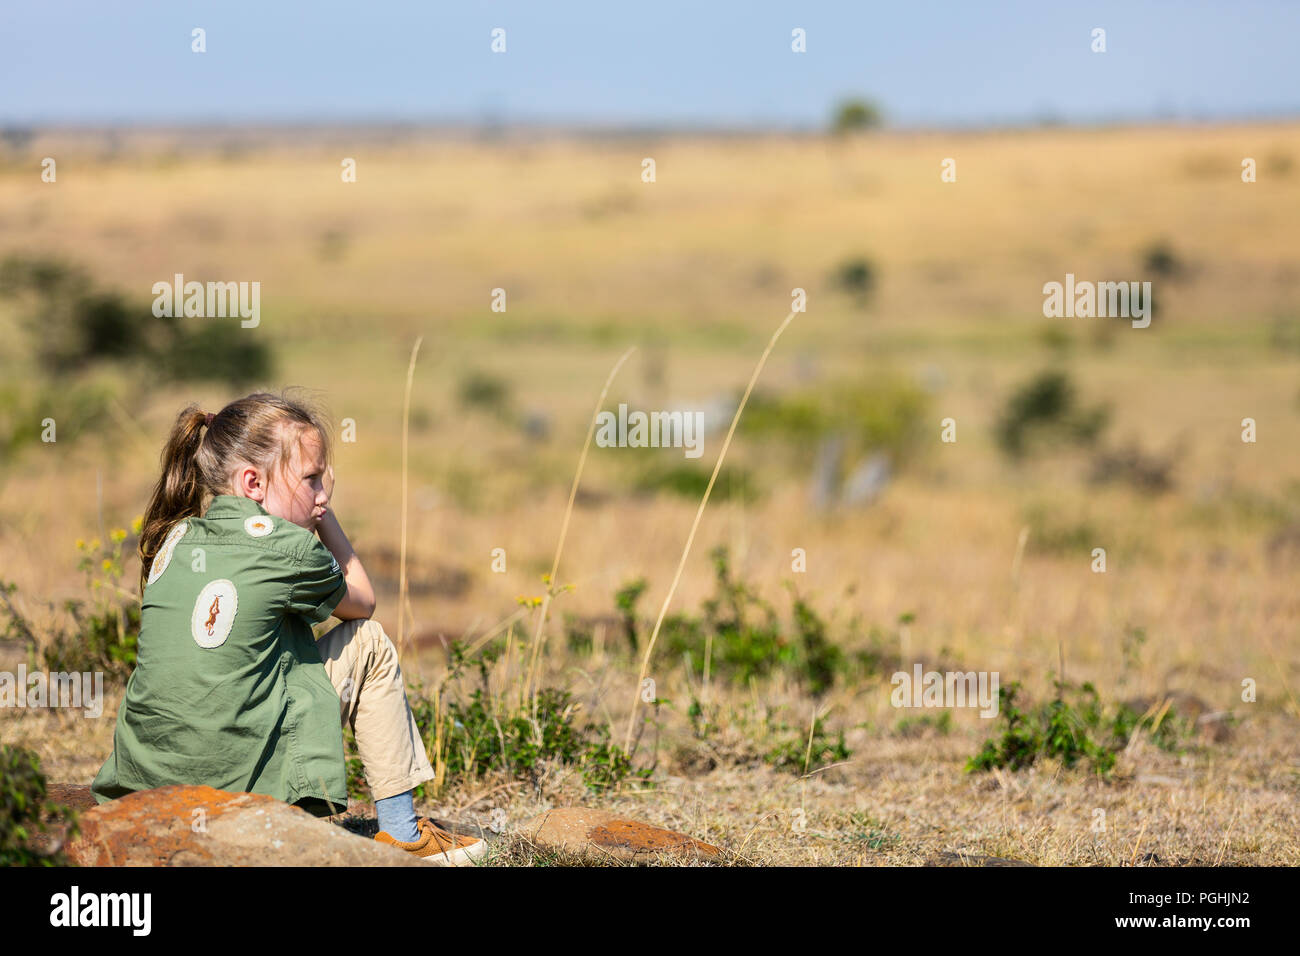 Little girl on safari vacation enjoying bush view - Stock Image